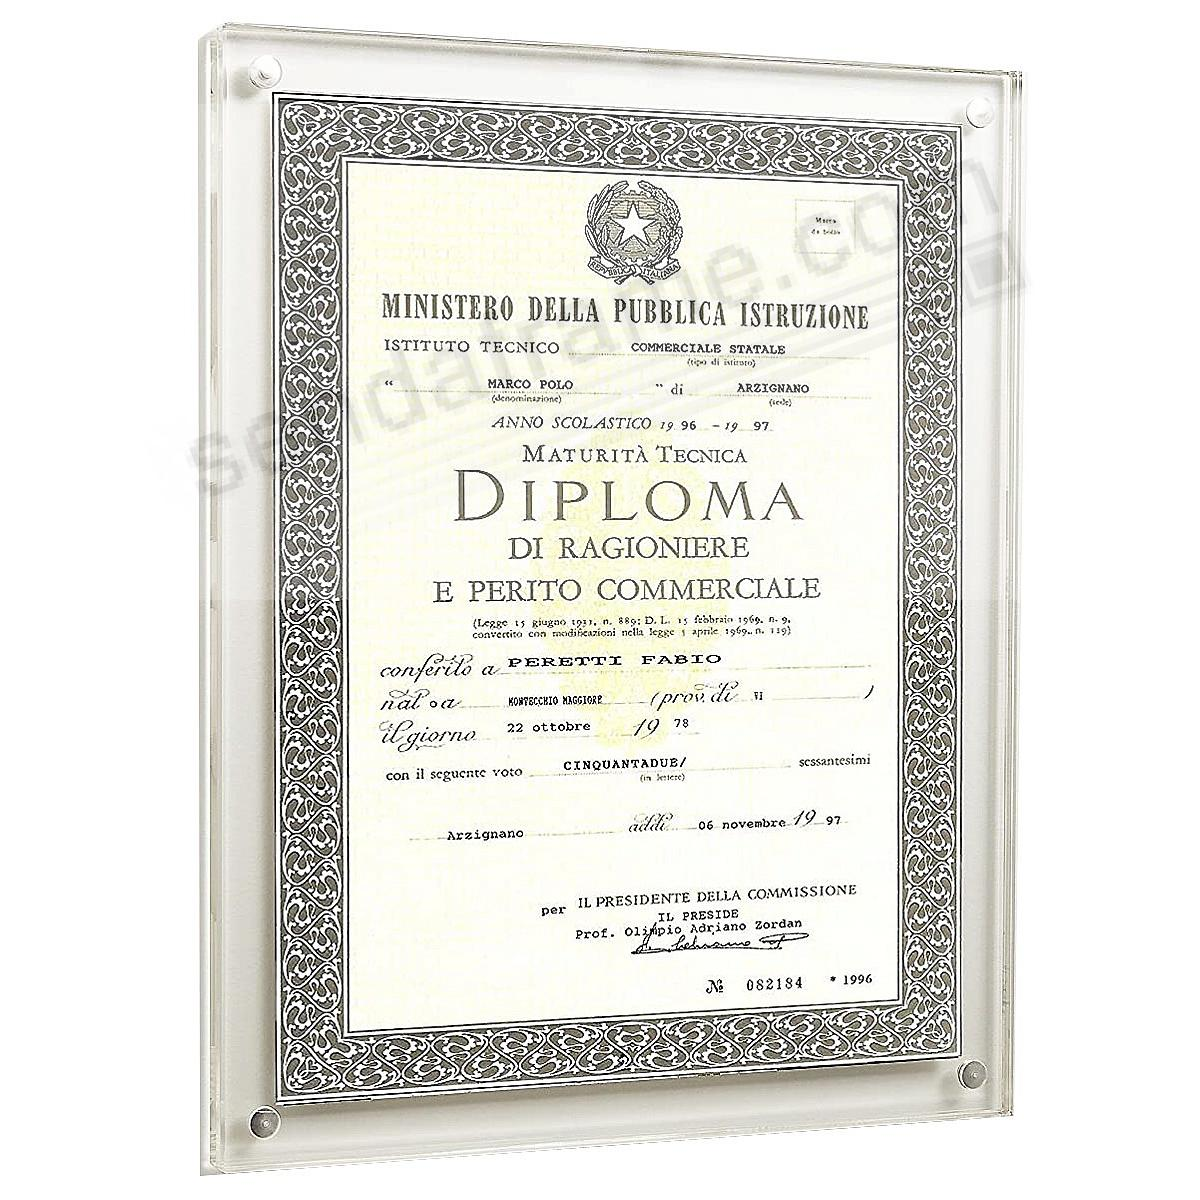 The Original Museum MAGNET FRAME by Canetti® - now in an 8½x11 Wall-Hanging Certificate style